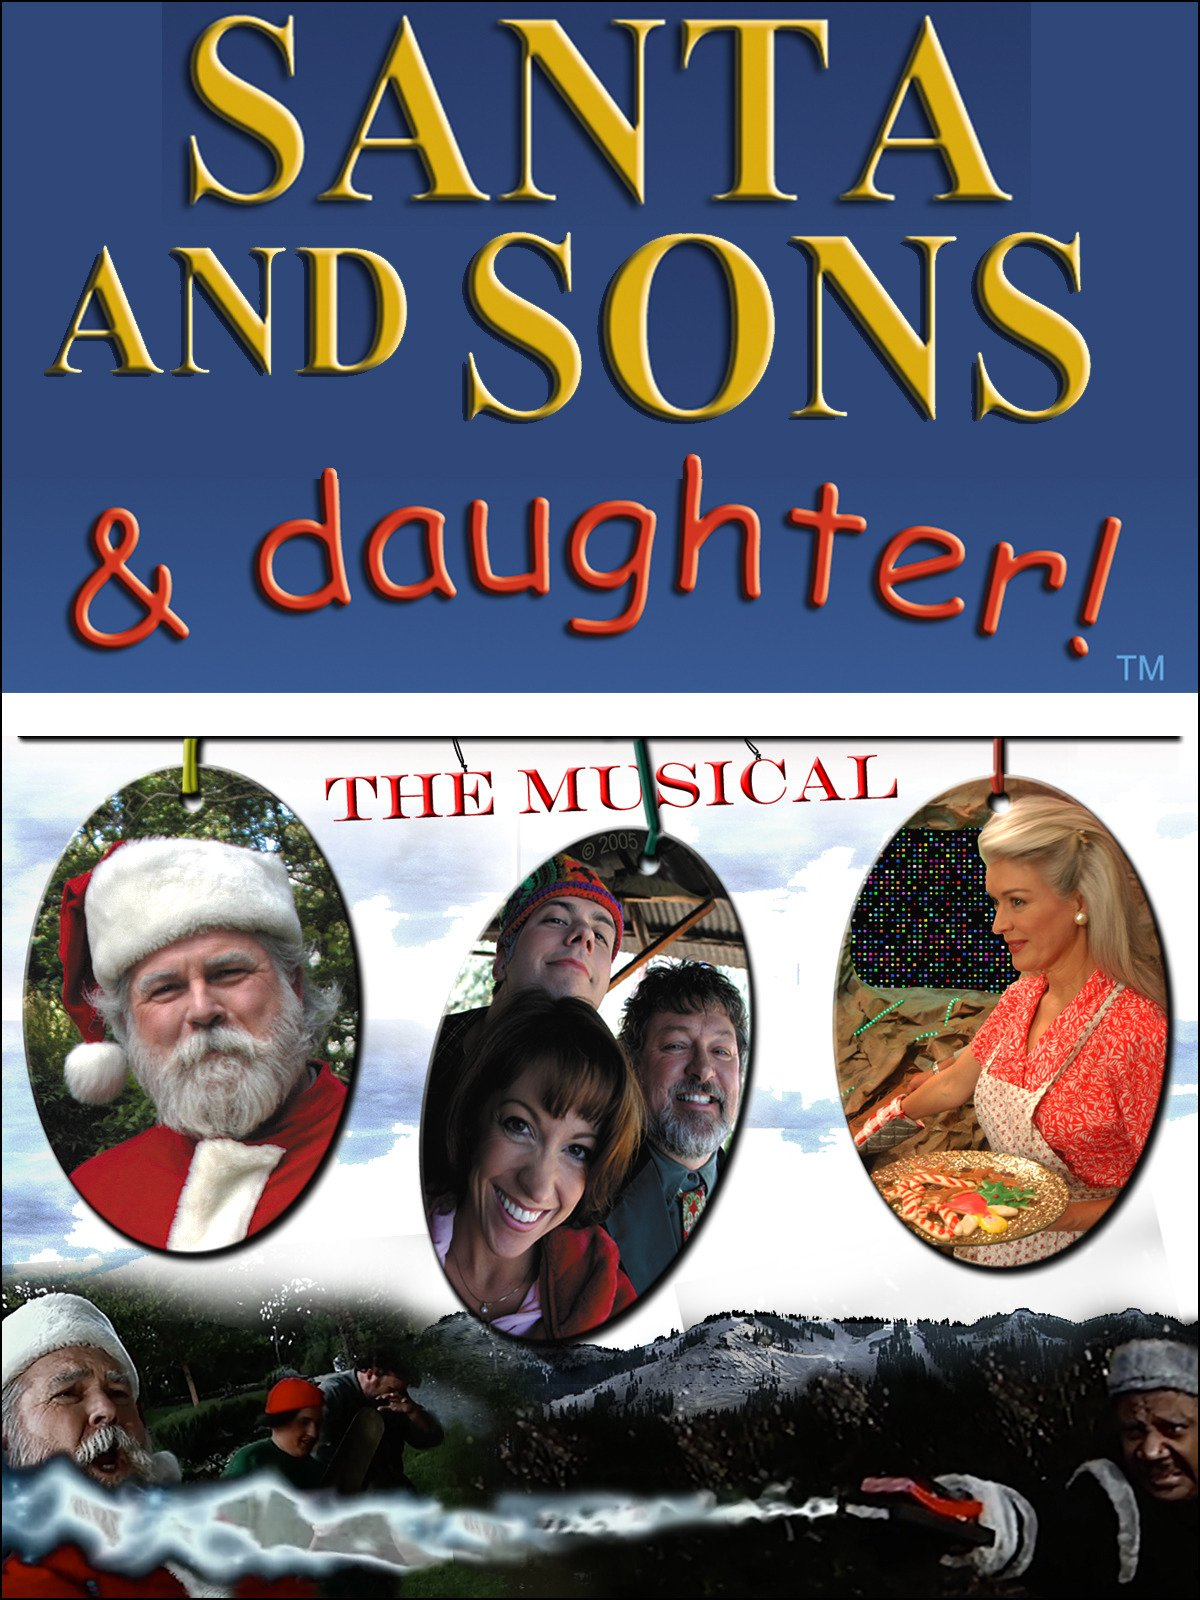 Santa and Sons and Daughter